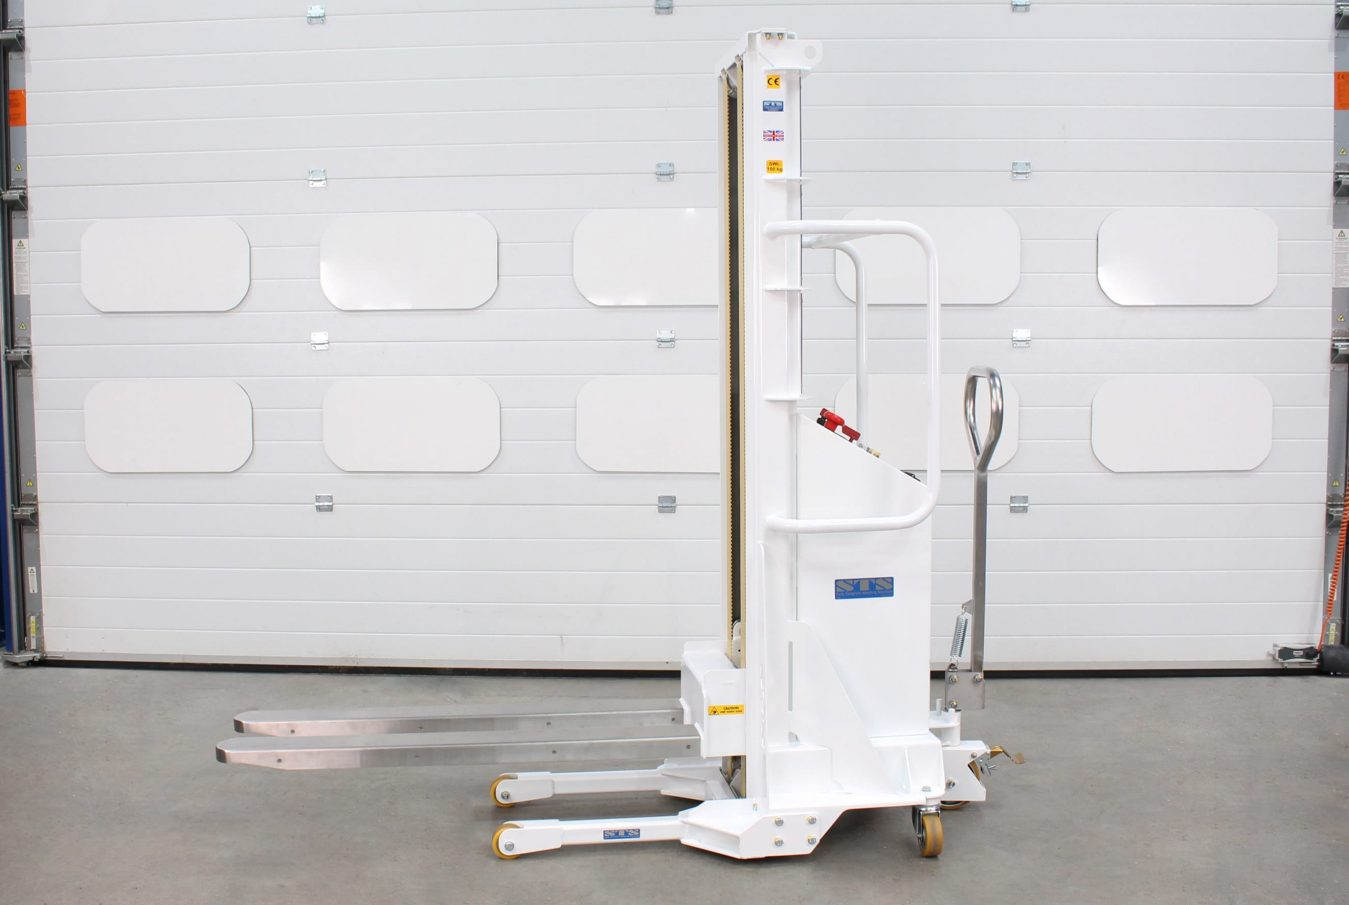 The side view of an electric stacker for manual equipment handling